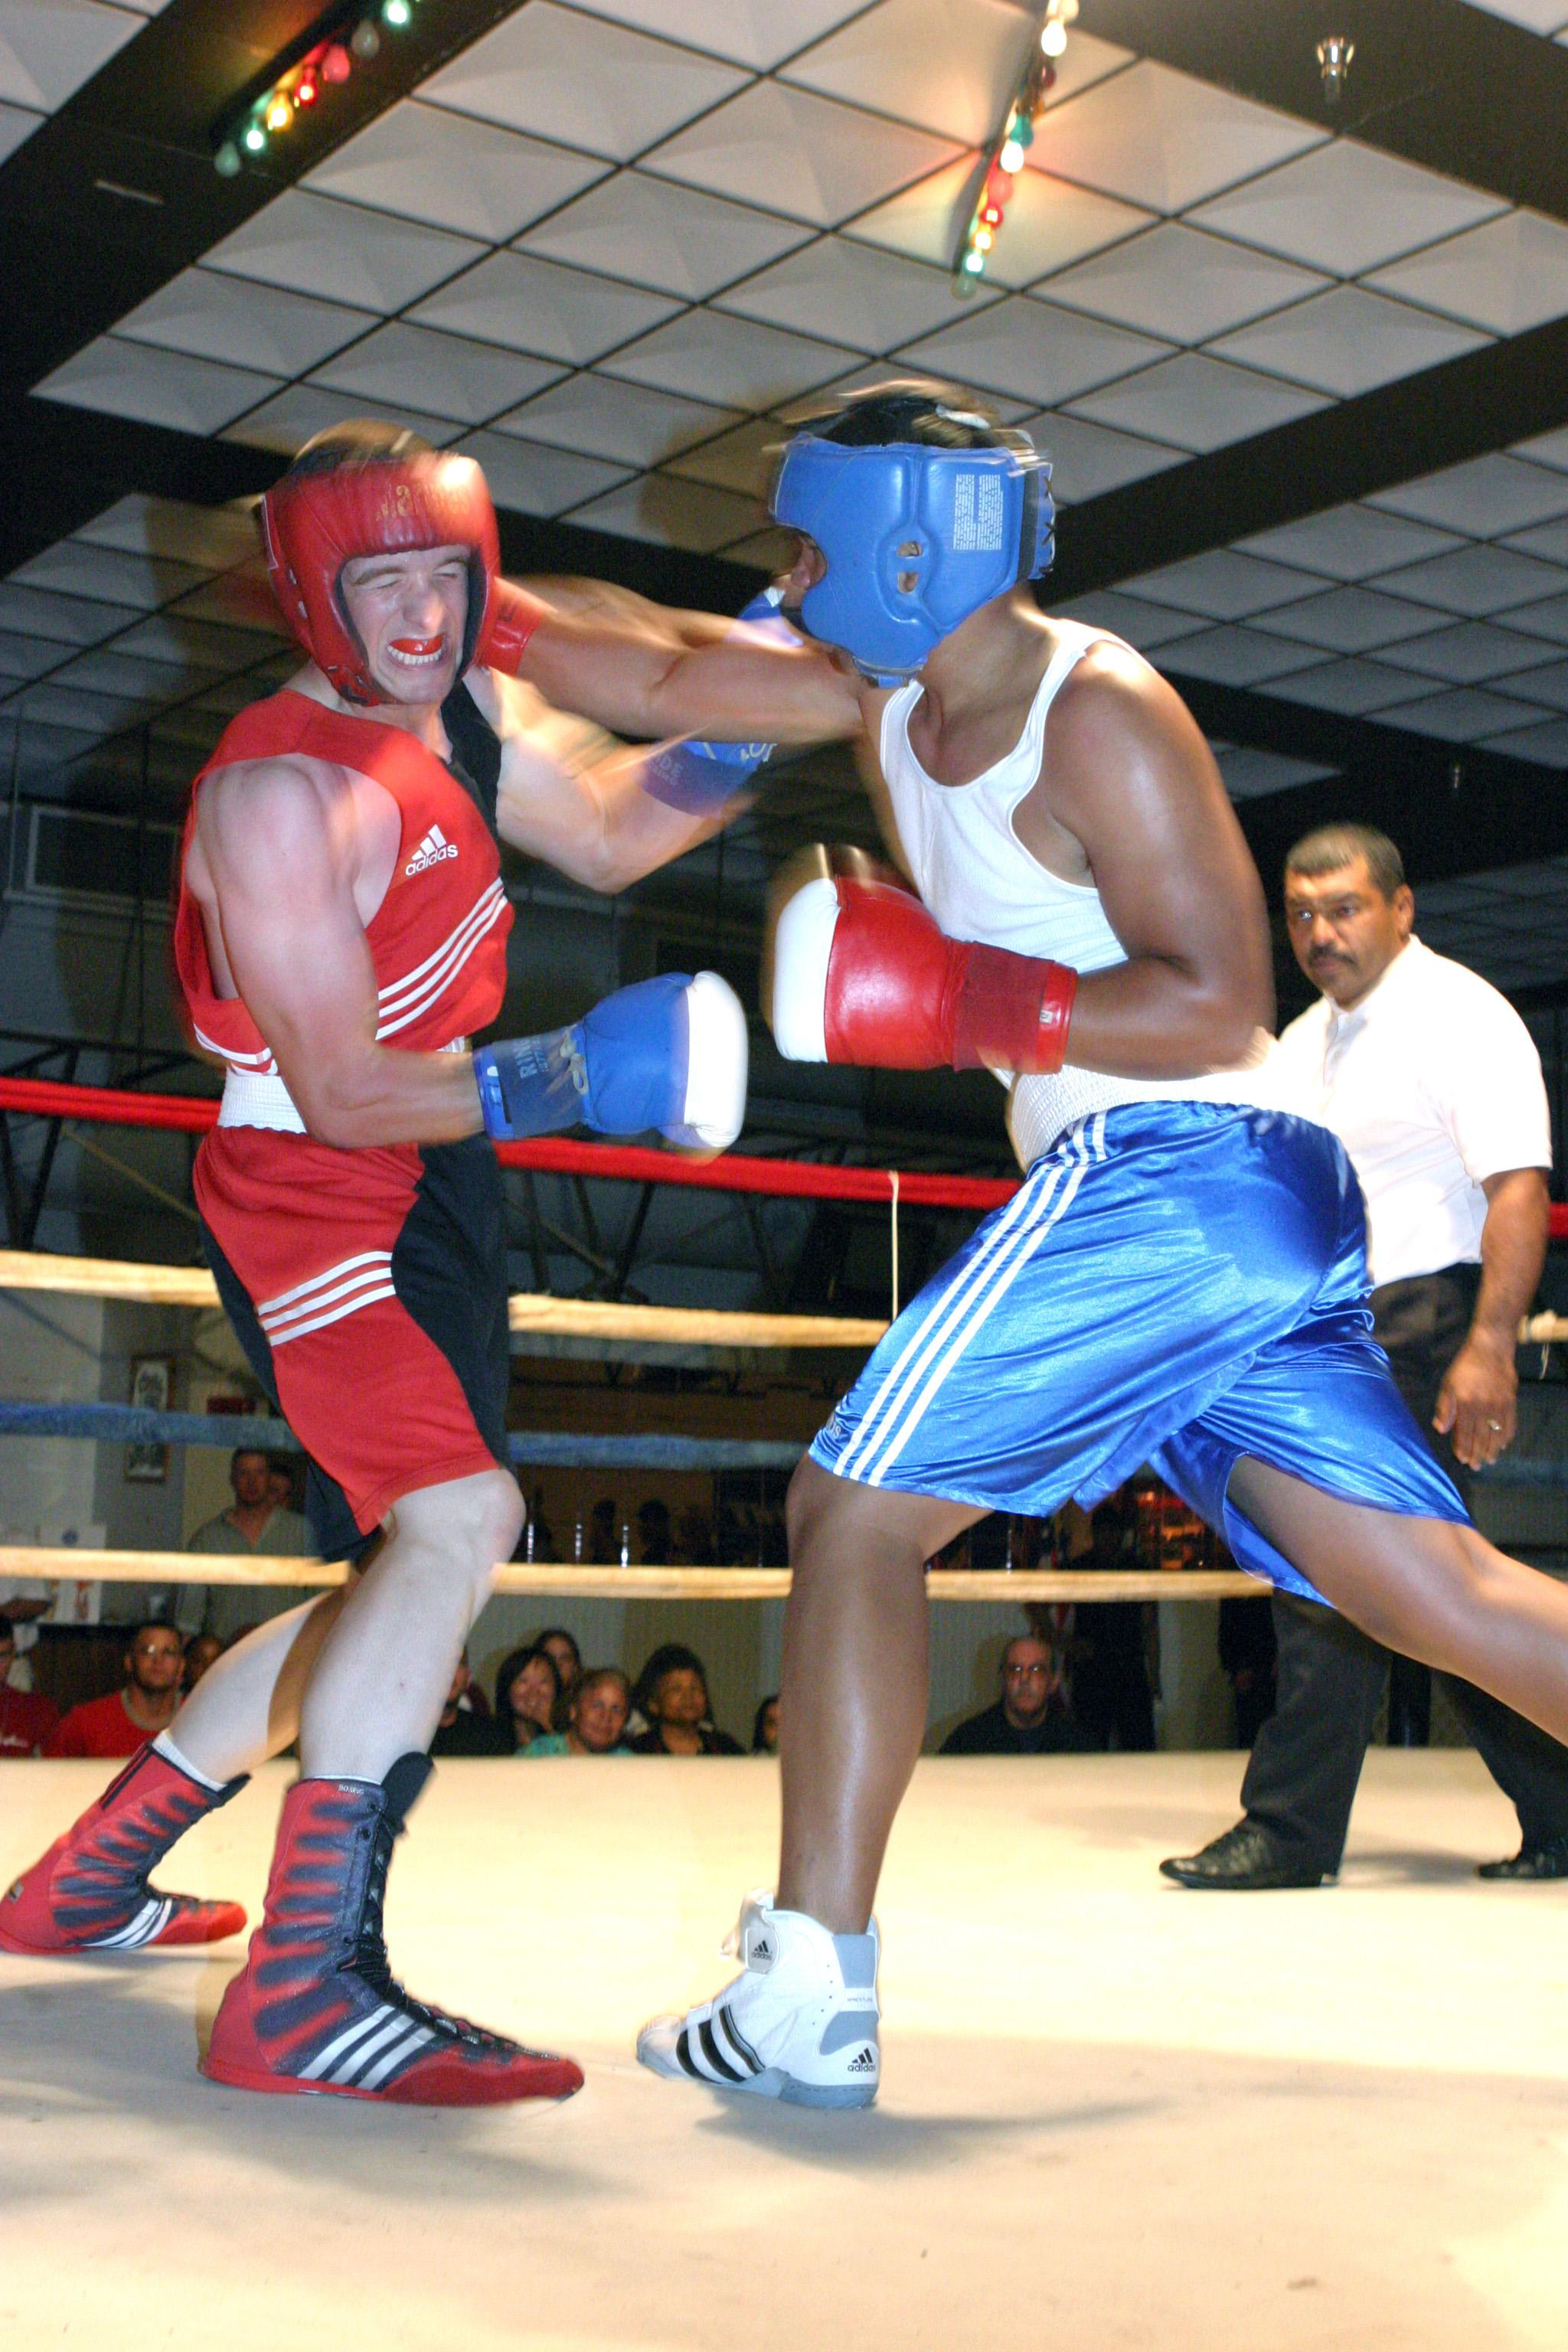 about amateur boxing